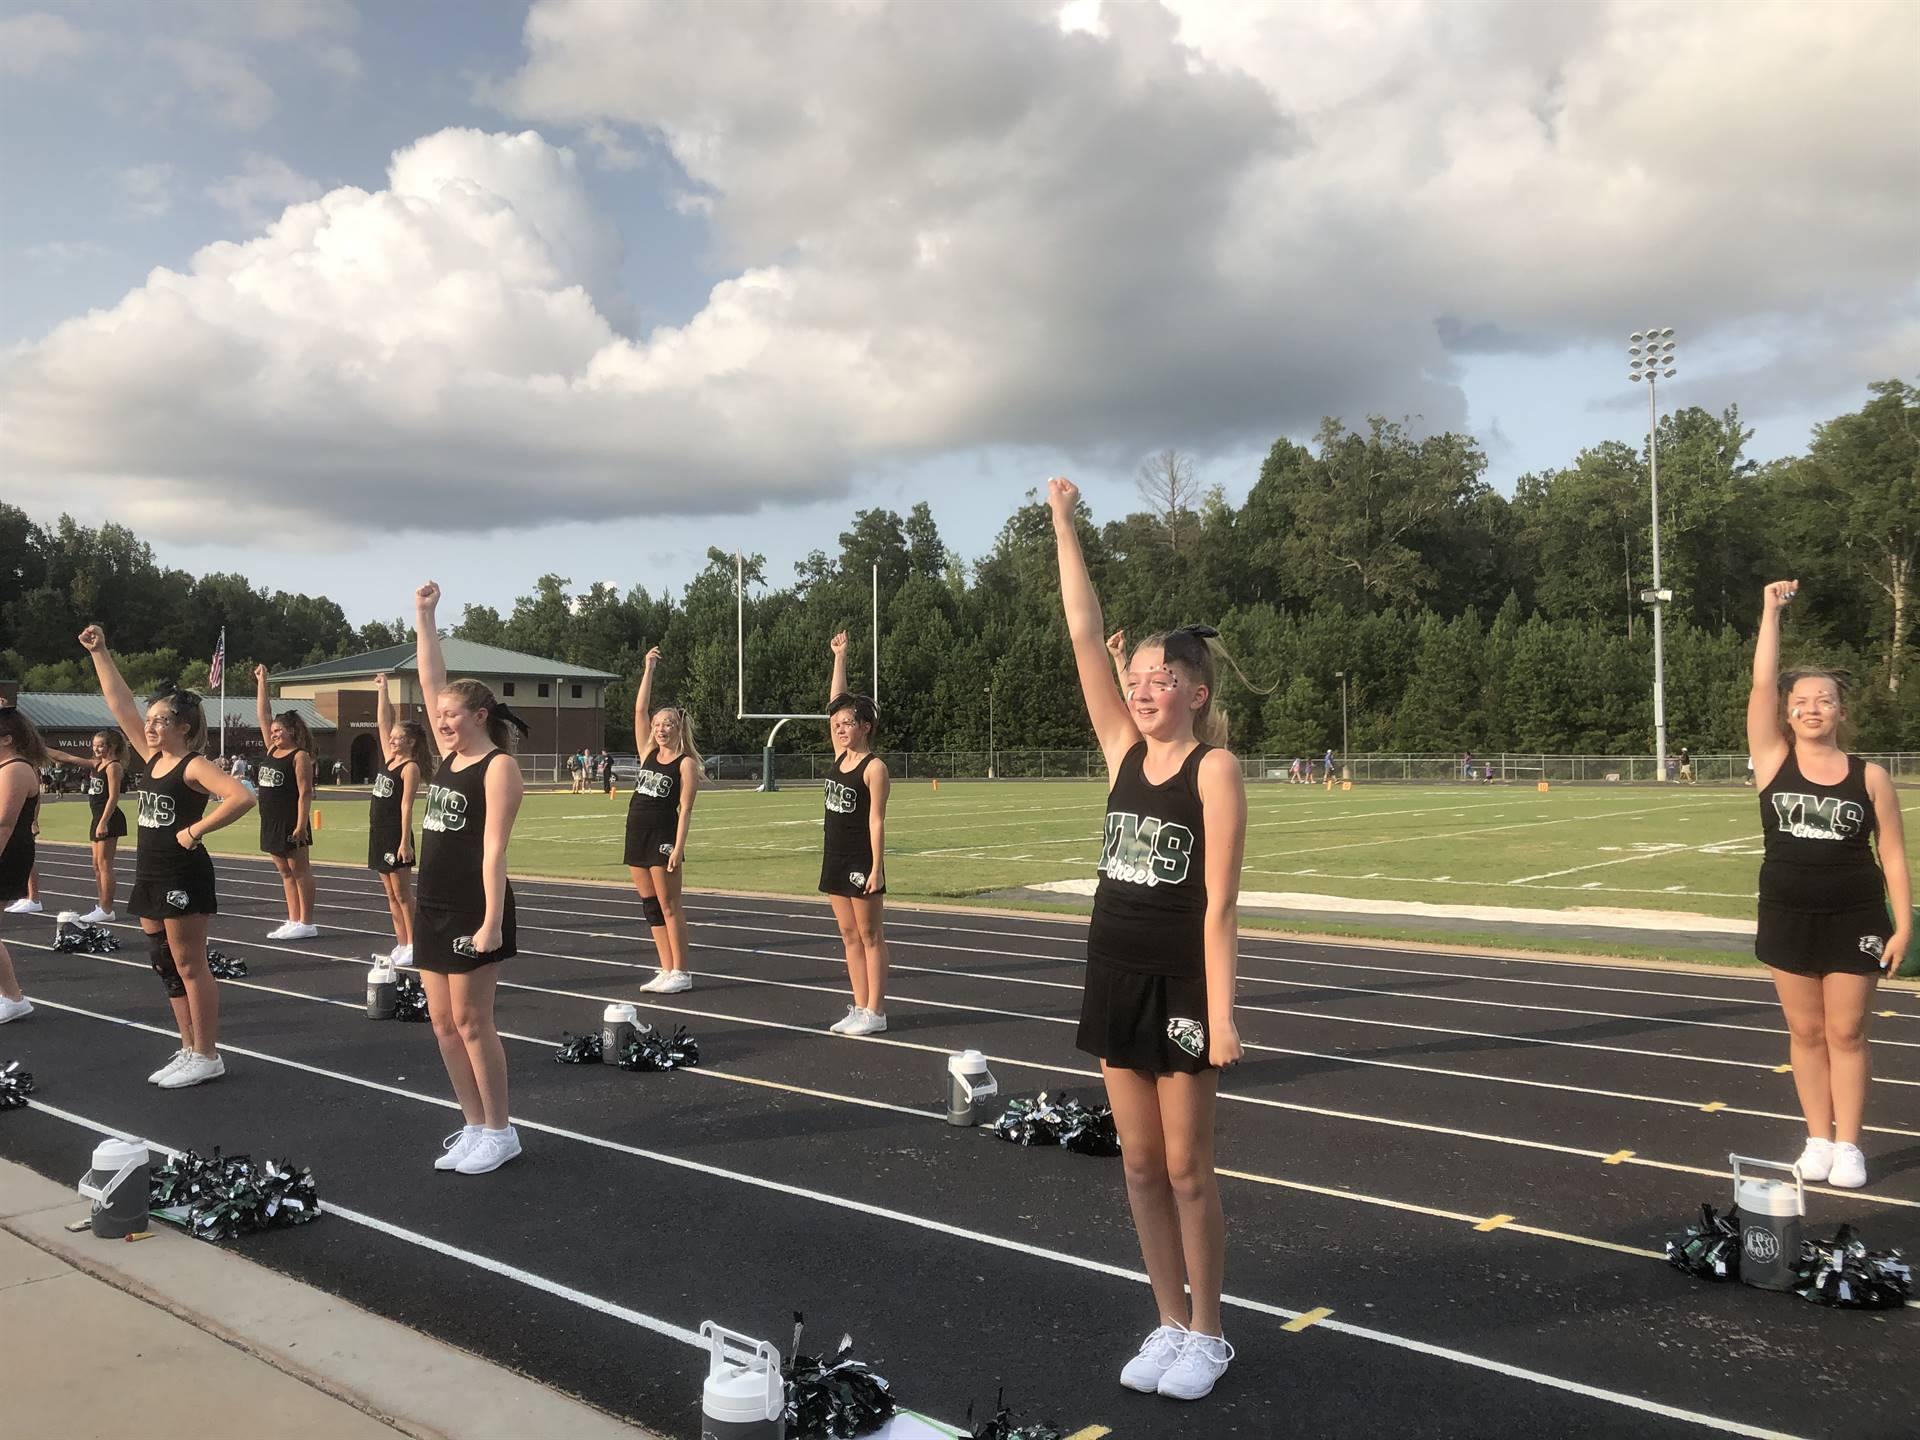 Cheering at Monticello game